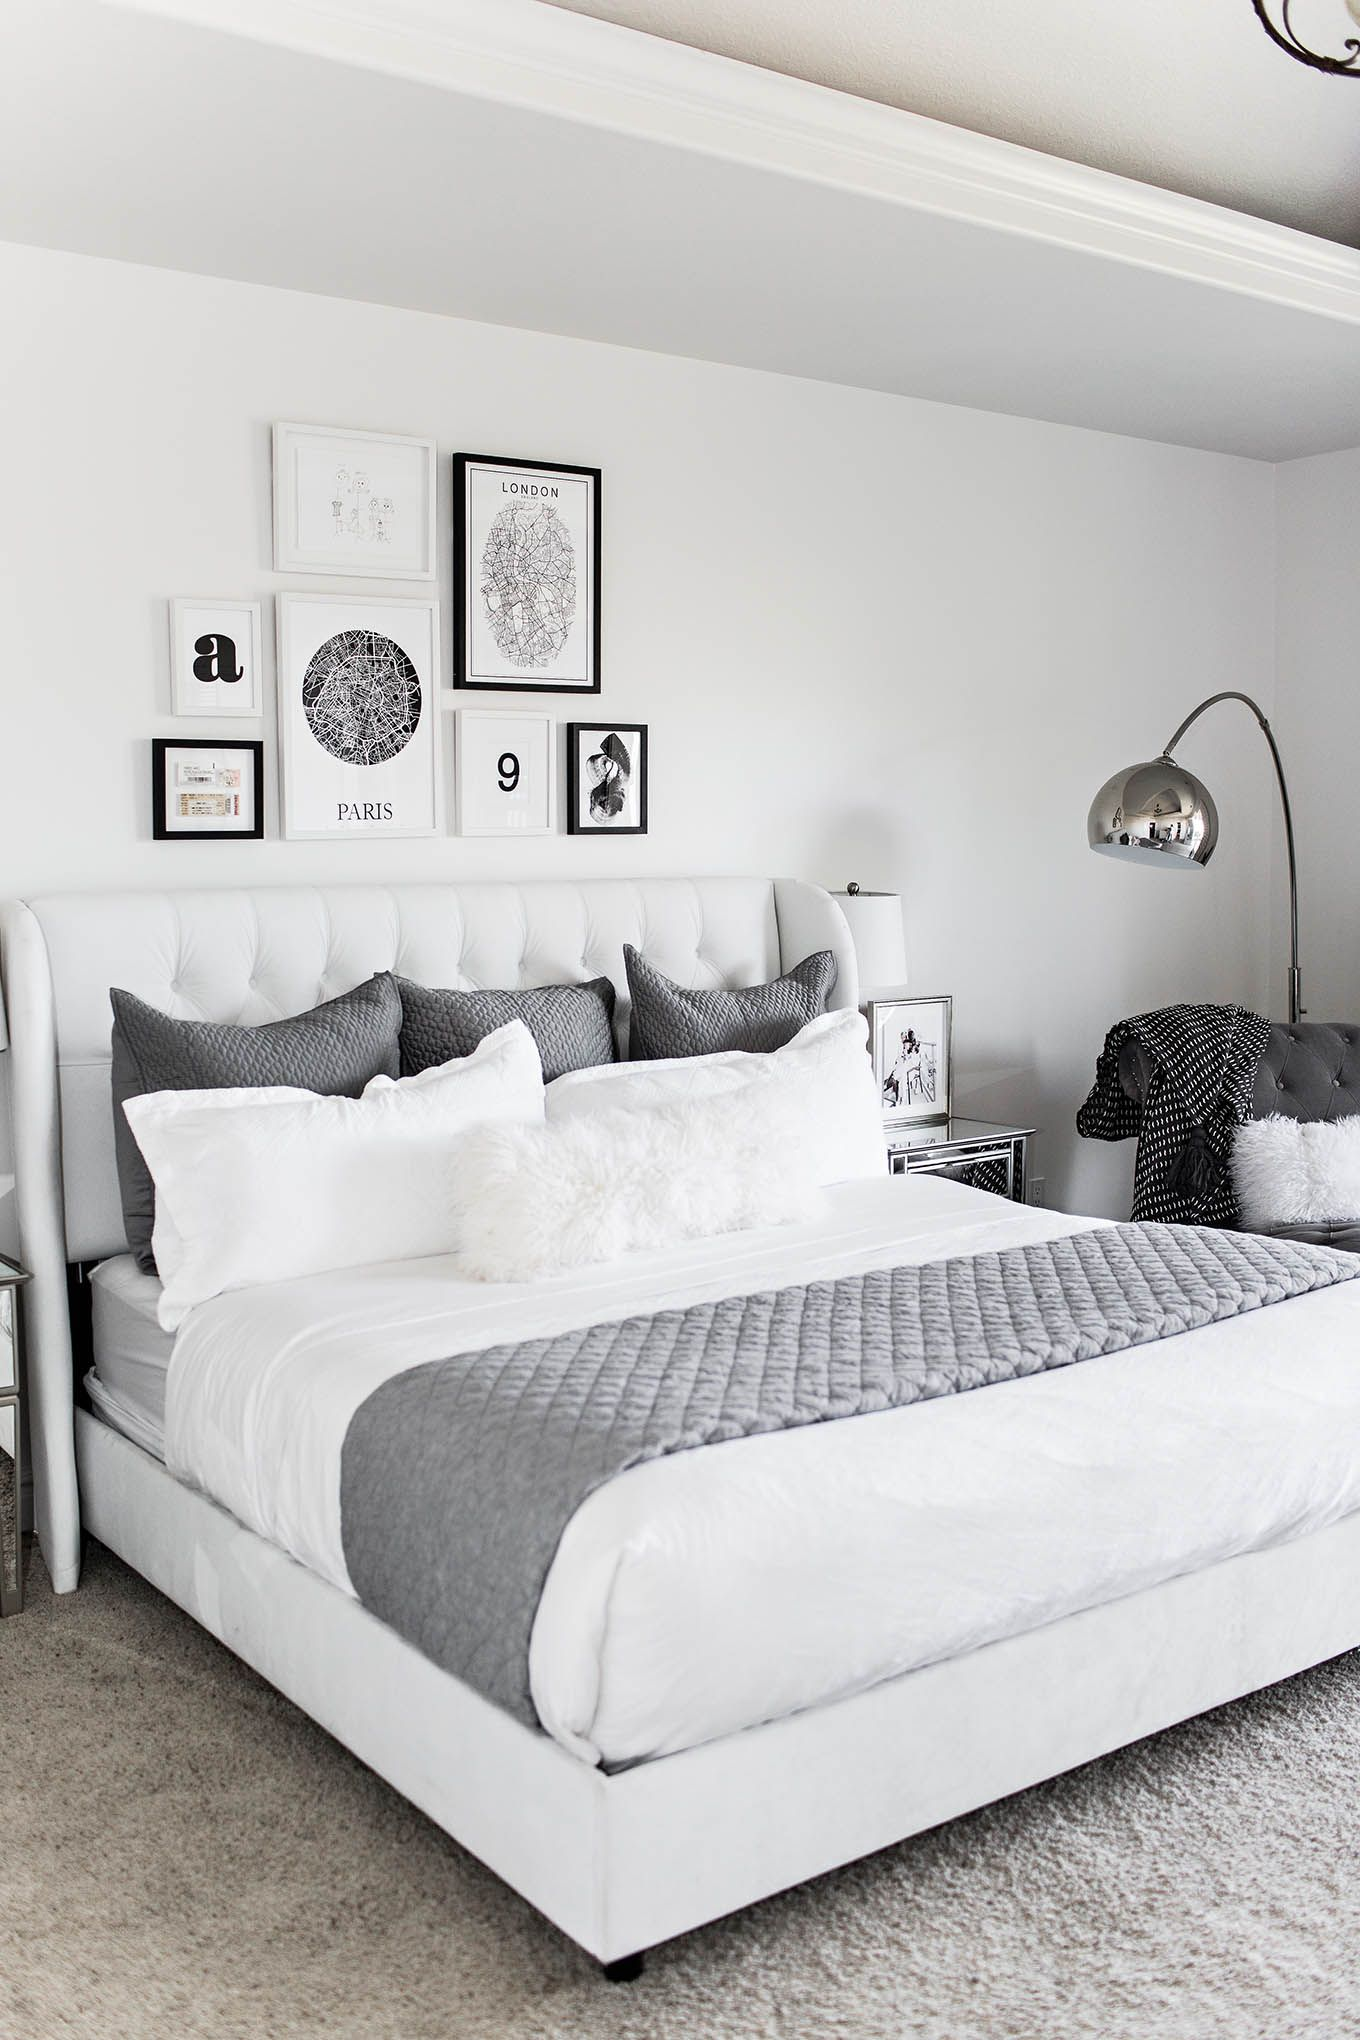 Good Decorate Your Bedroom With A Gallery Of Meaningful Art